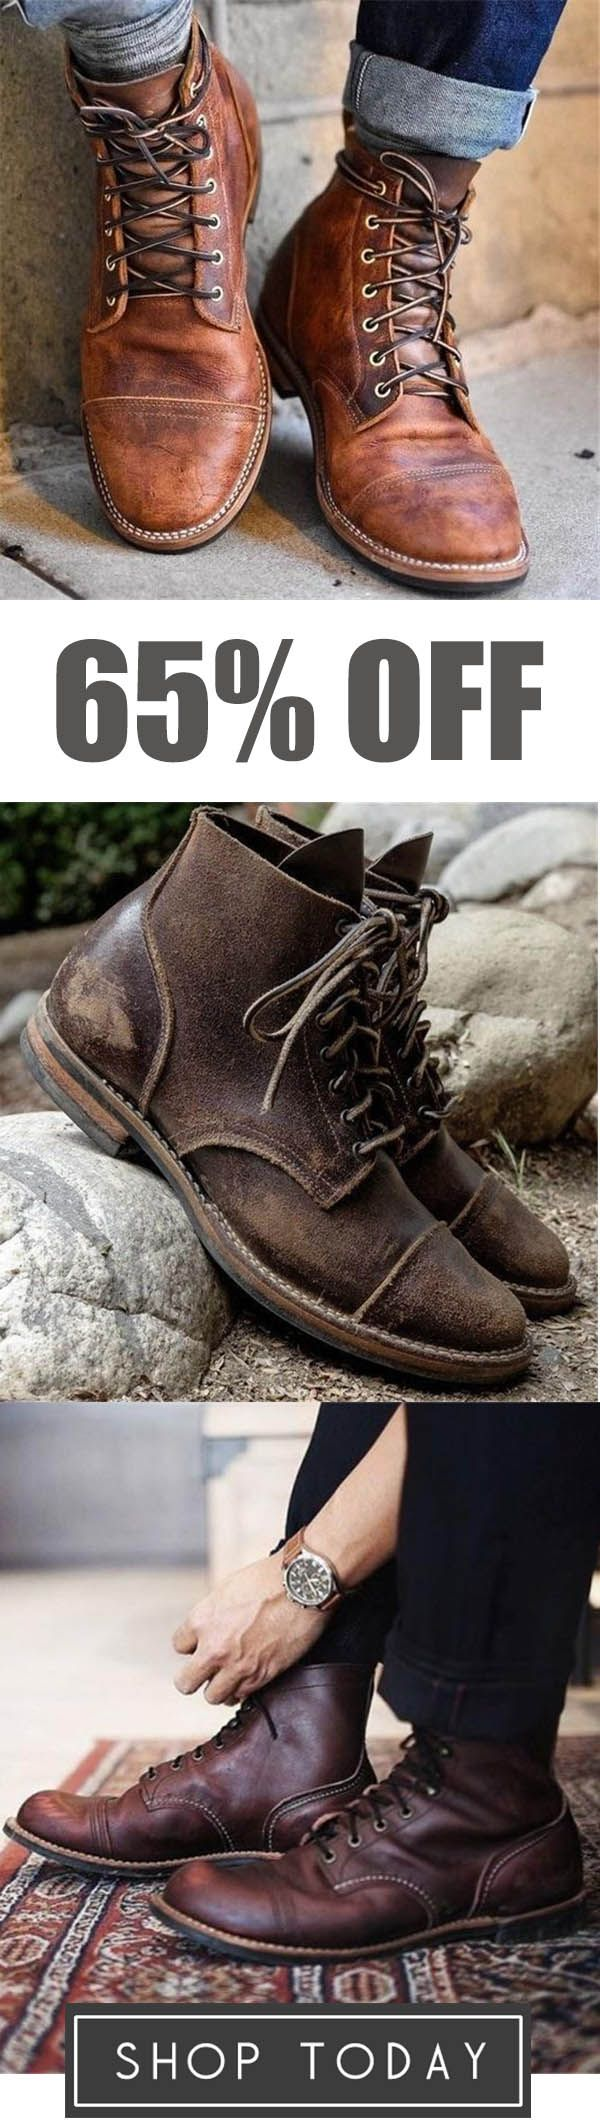 44++ Mens leather ankle boots ideas ideas in 2021